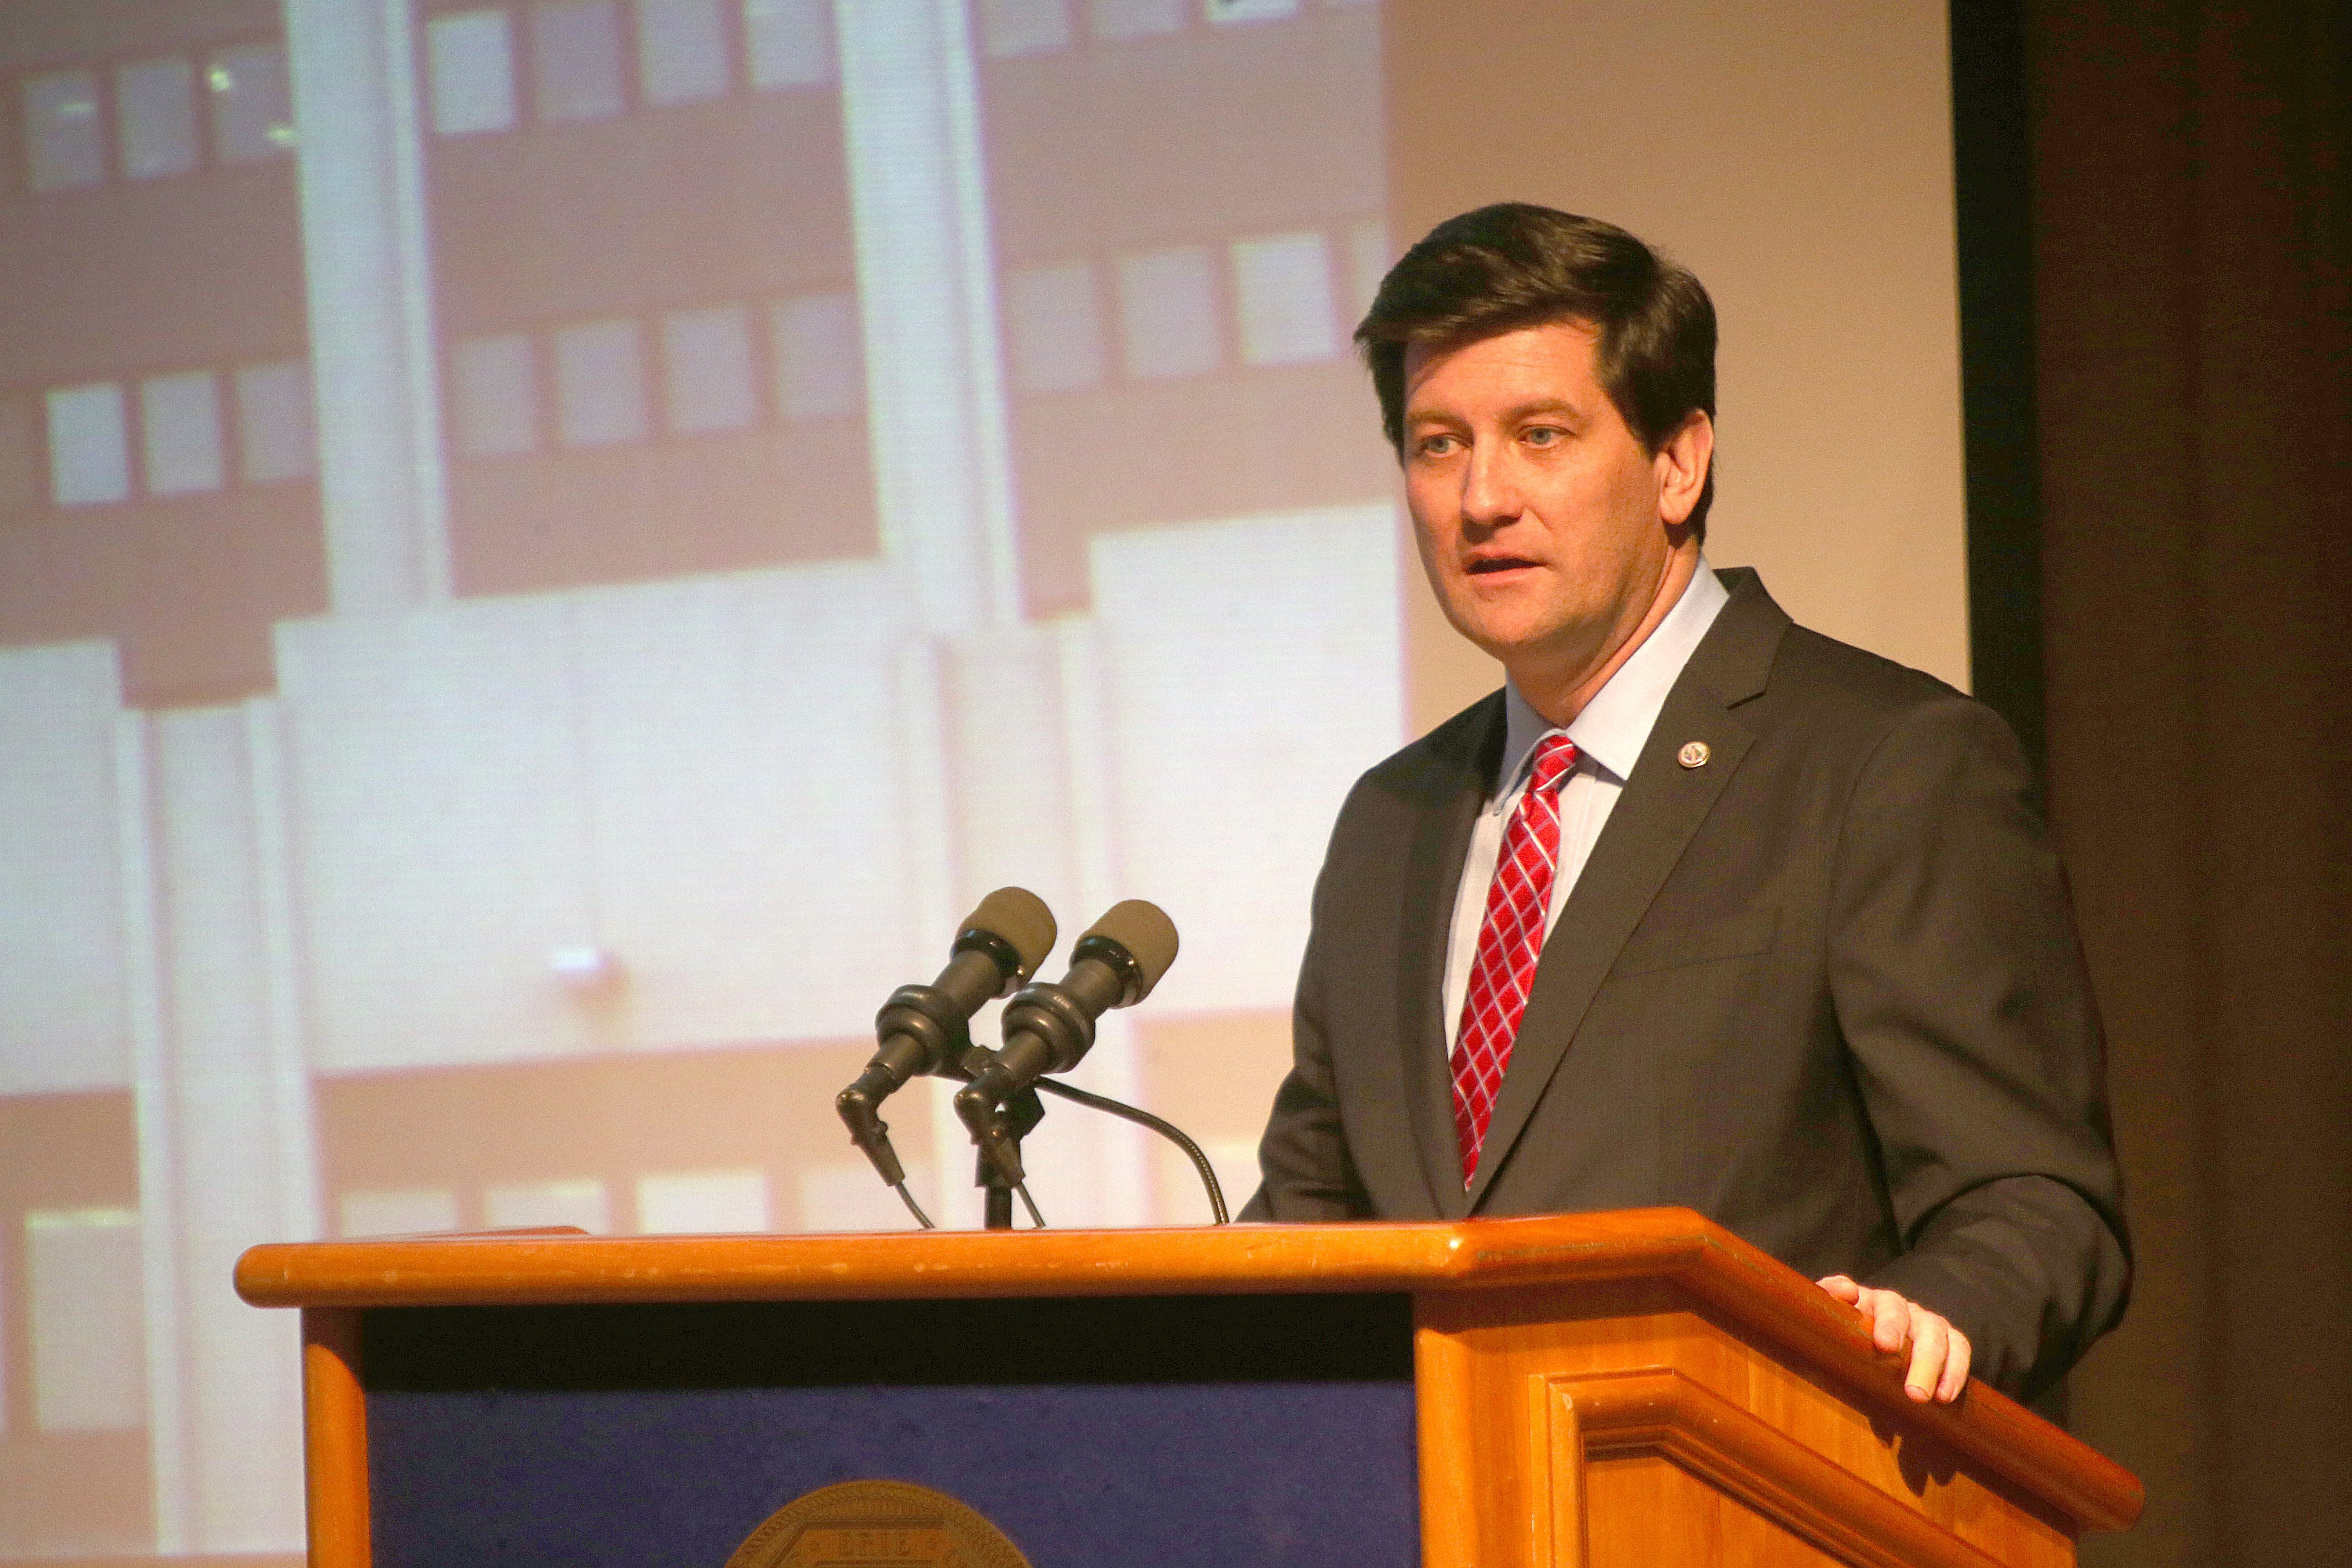 Erie County Executive Mark C. Poloncarz unveiled a set of initiatives to boost the economy that expand on plans he alluded to in his 2013 State of the County address, including improvements to workforce development, entrepreneurship and tourism.